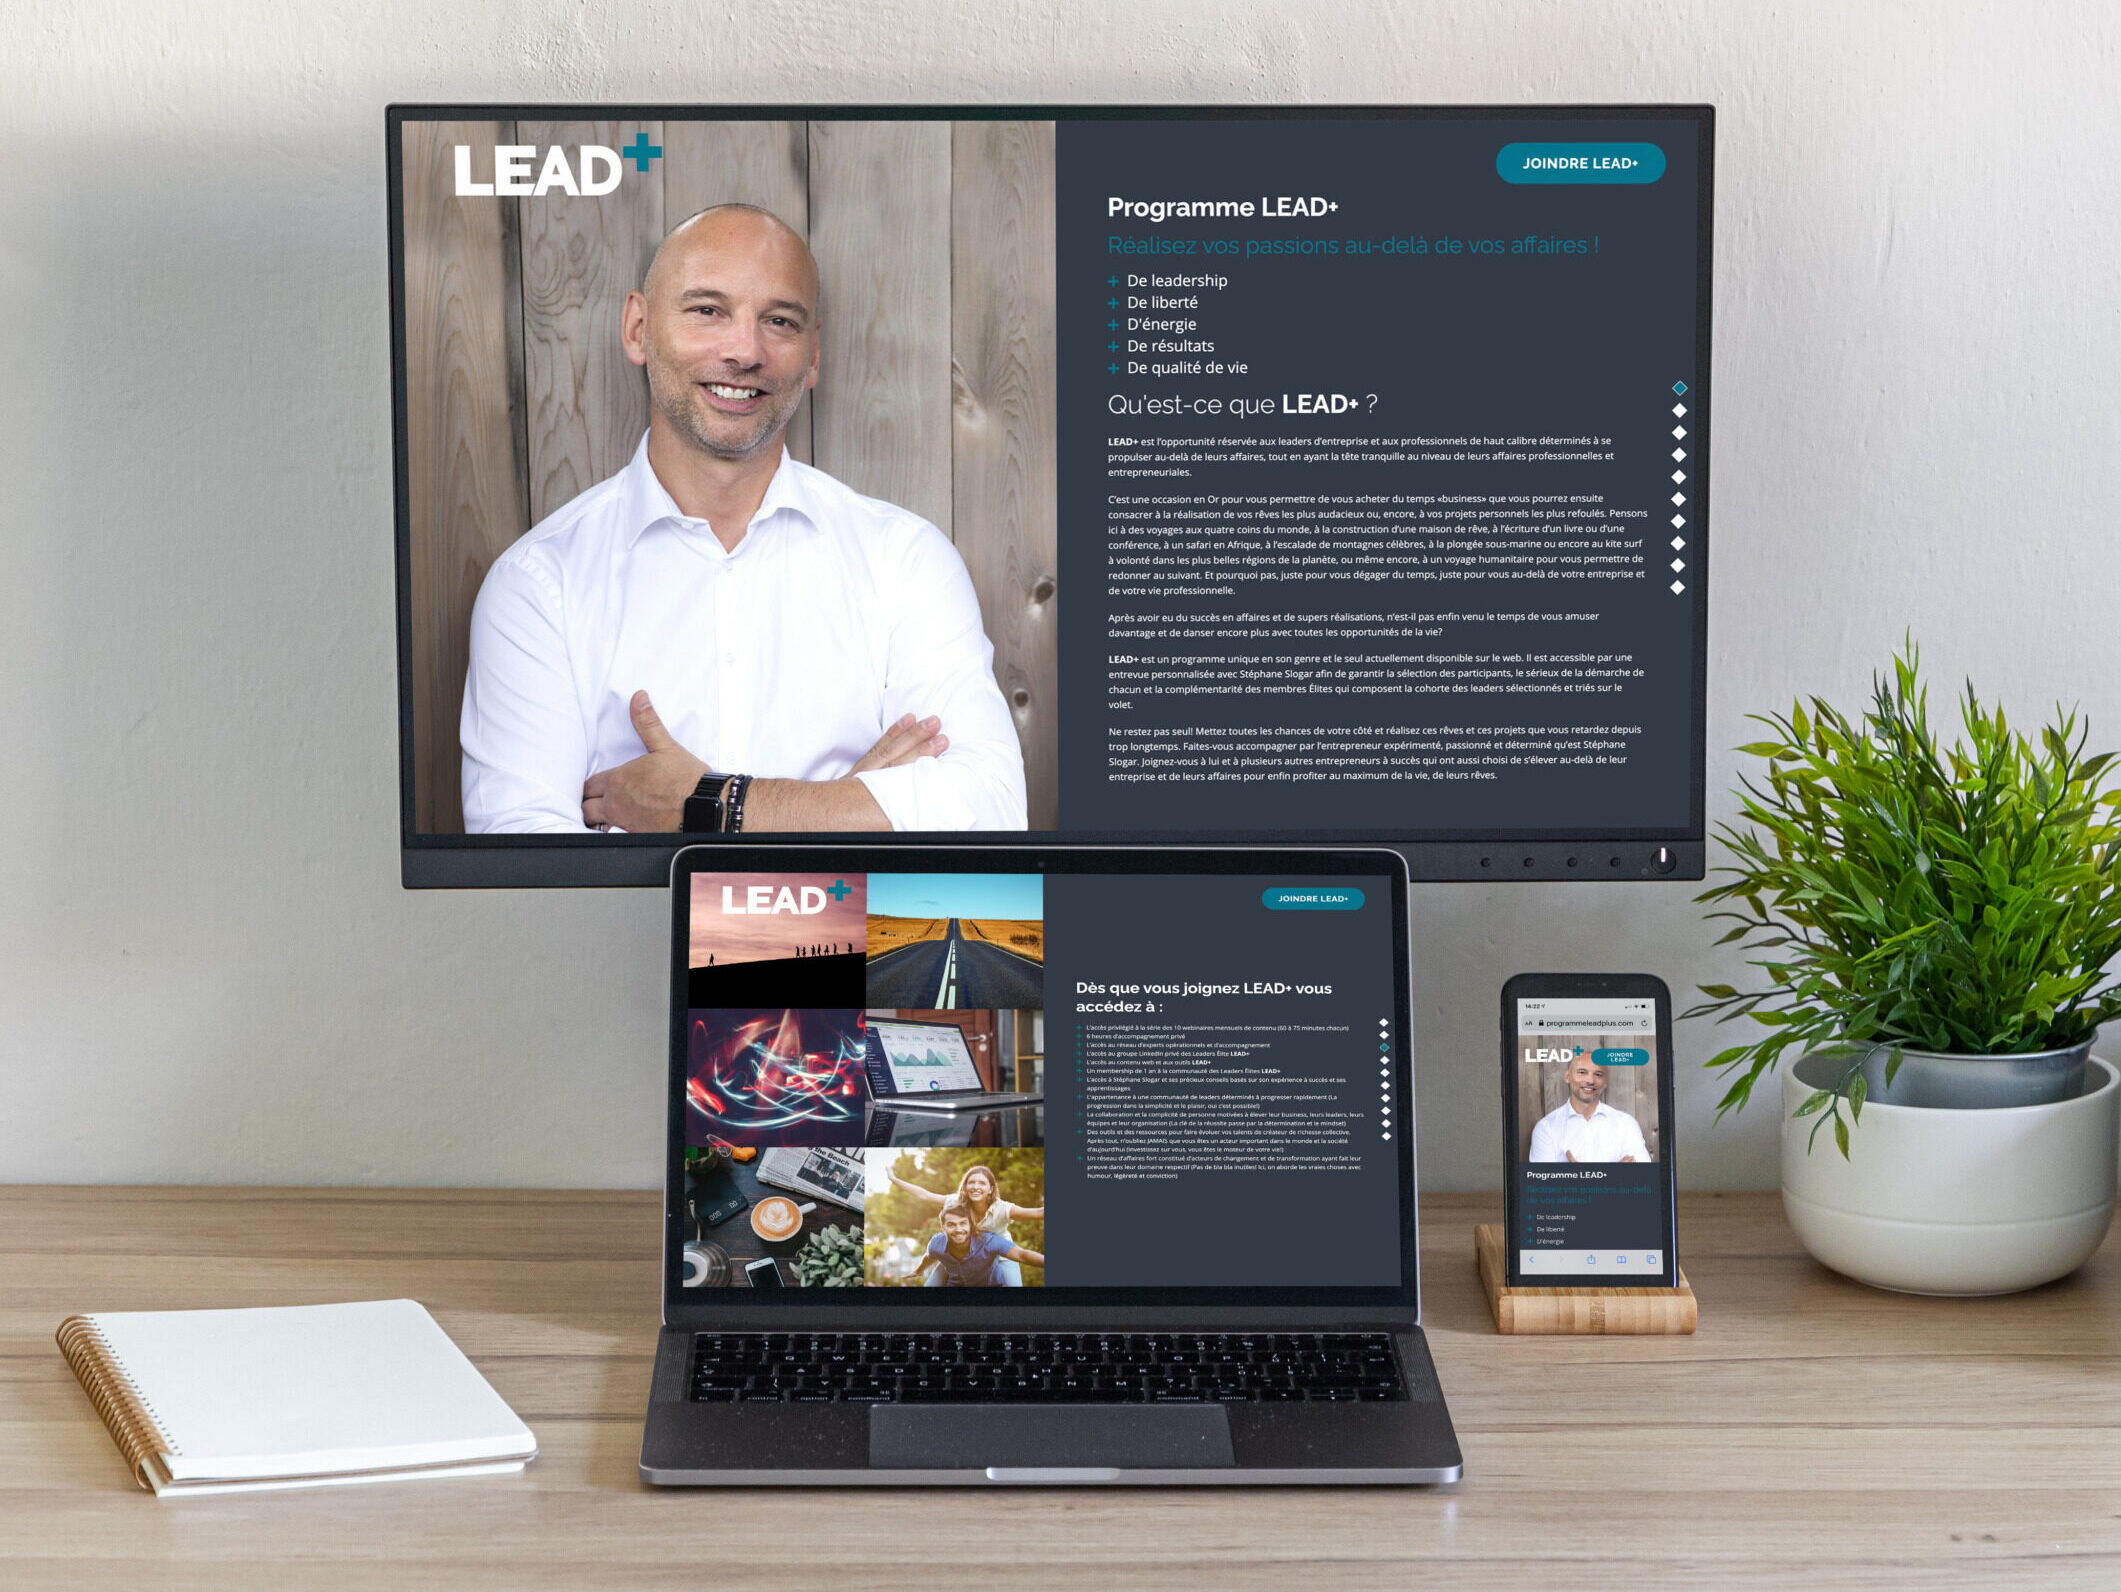 LEAD+ Program - Web site